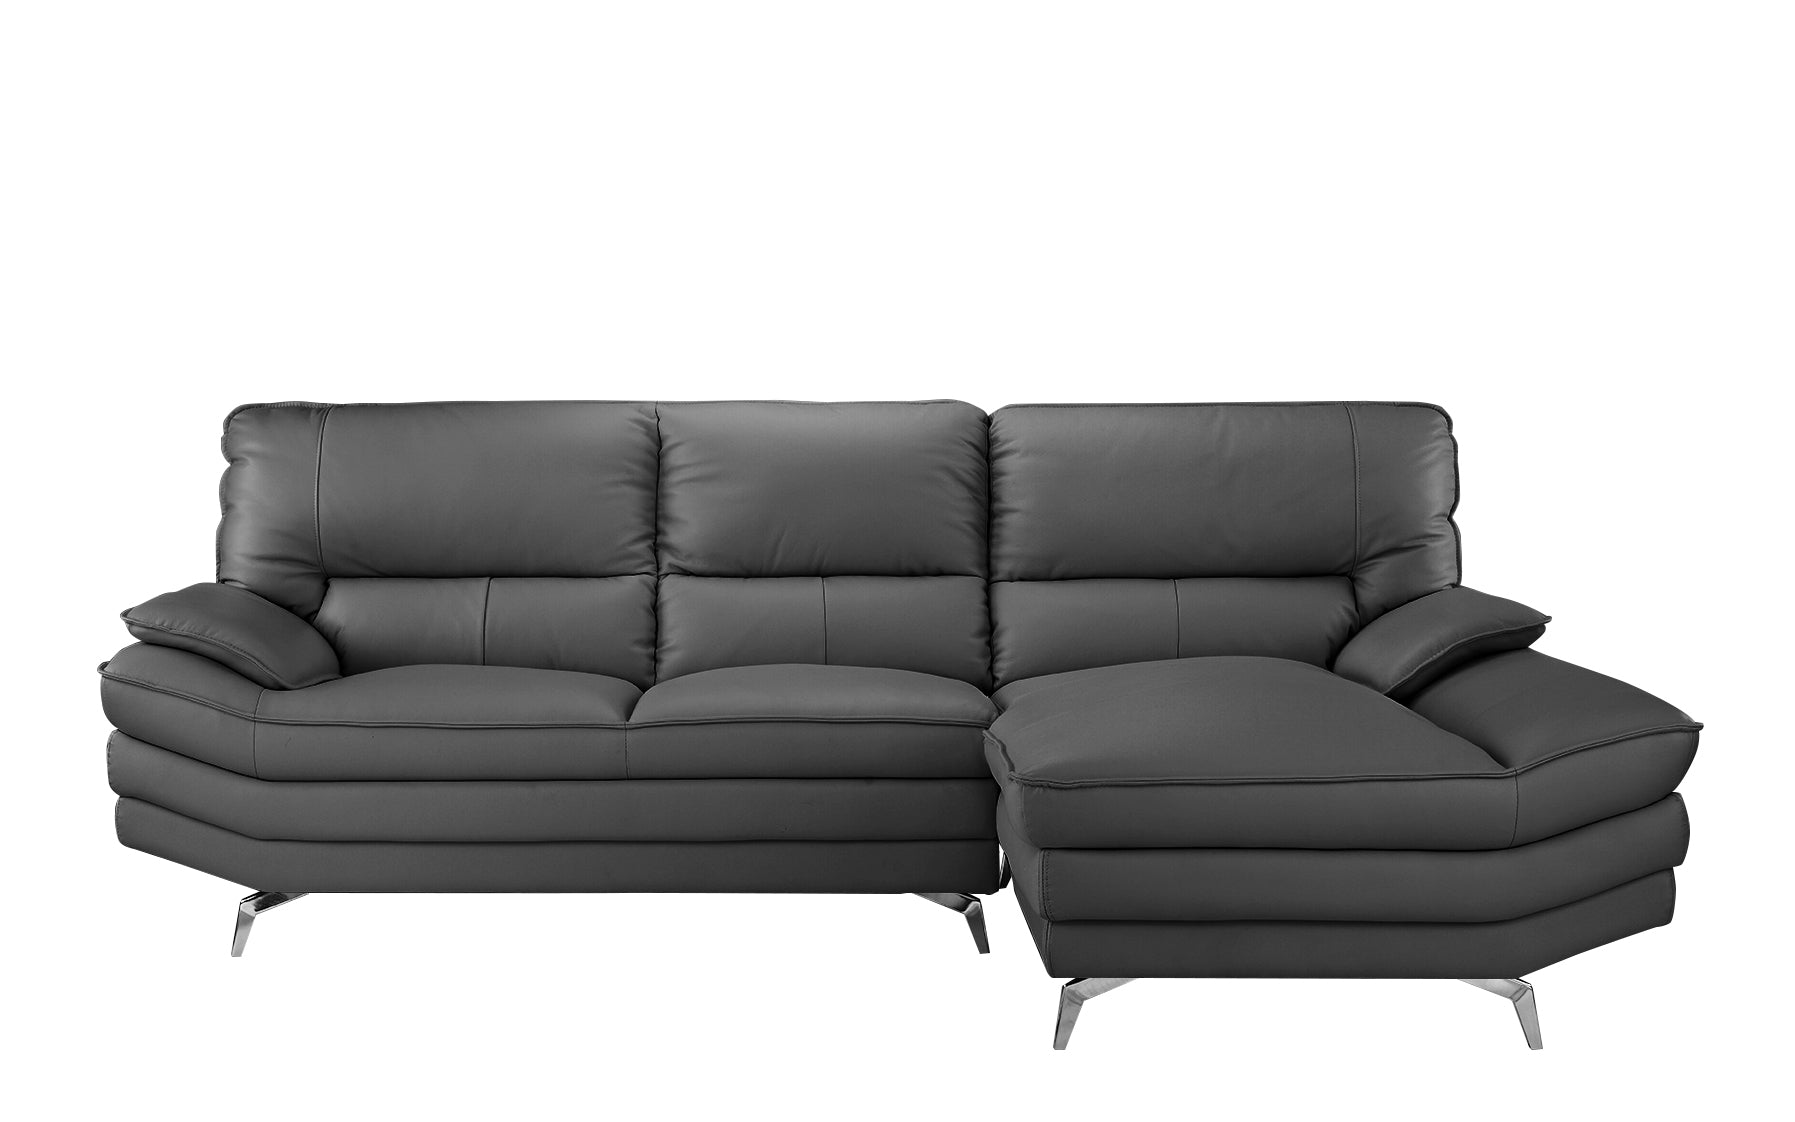 l shaped sectional sofa. Desi Modern Leather L-Shape Sectional Sofa L Shaped